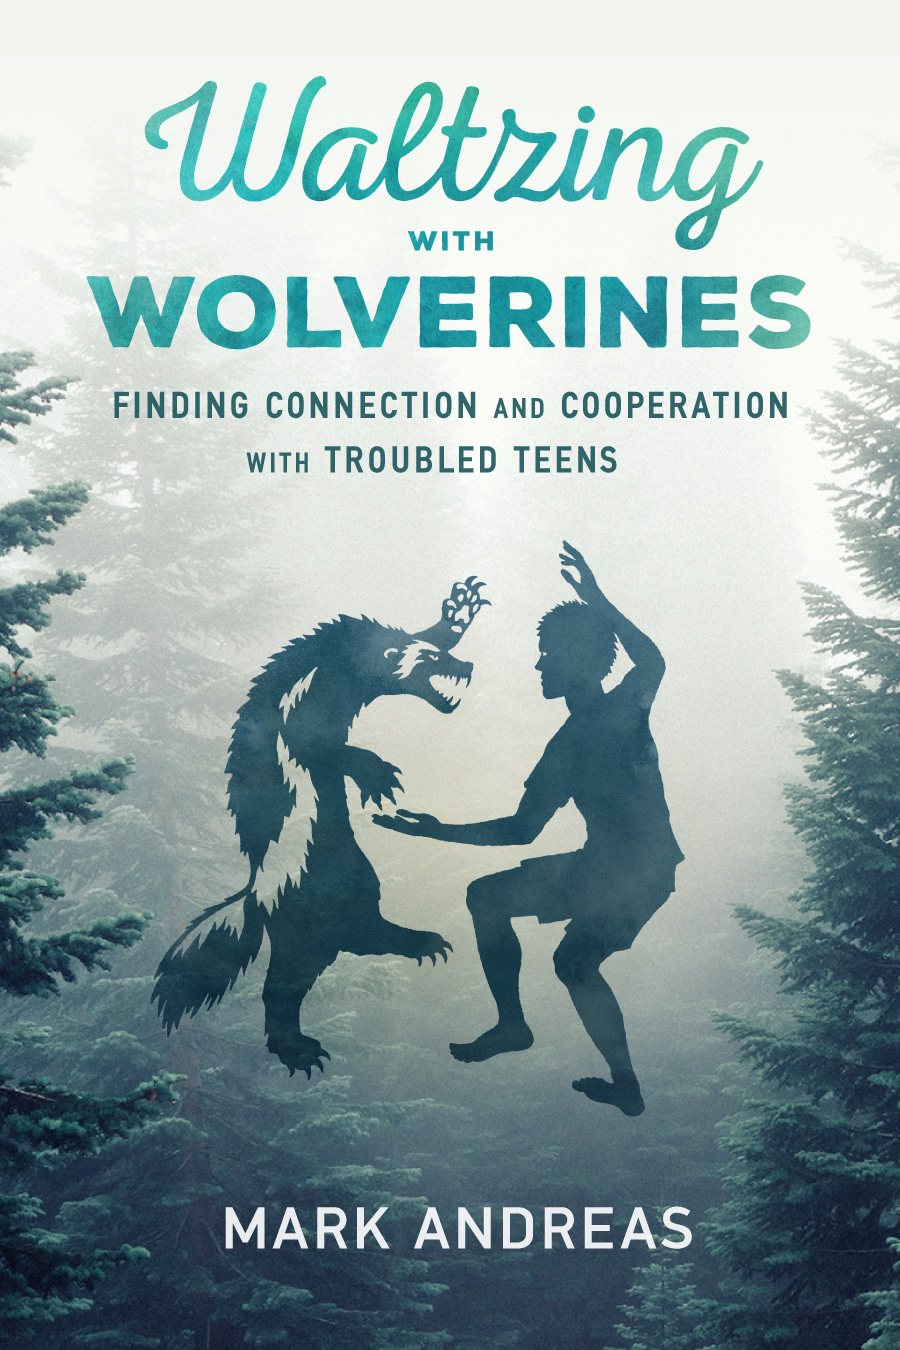 Waltzing-with-Wolverines-At-Risk_Troubled_Youth_Leadership_book_By_Mark_Andreas_2.14